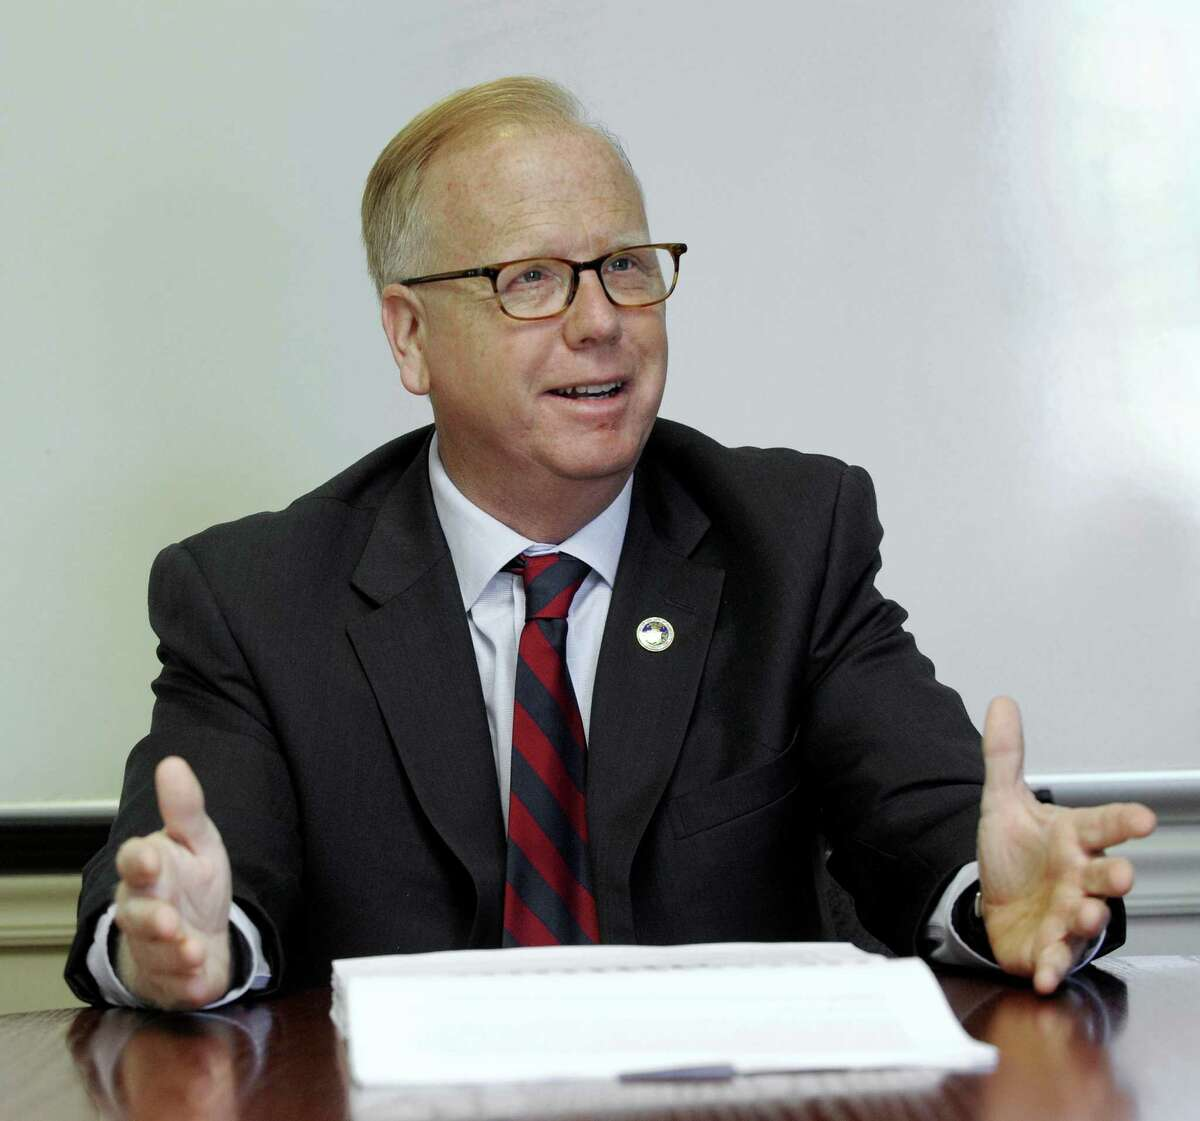 Danbury Mayor Mark Boughton is the current president of the Connecticut Conference of Municipalities, which released a new report Monday on the state's over-reliance on local property taxes.